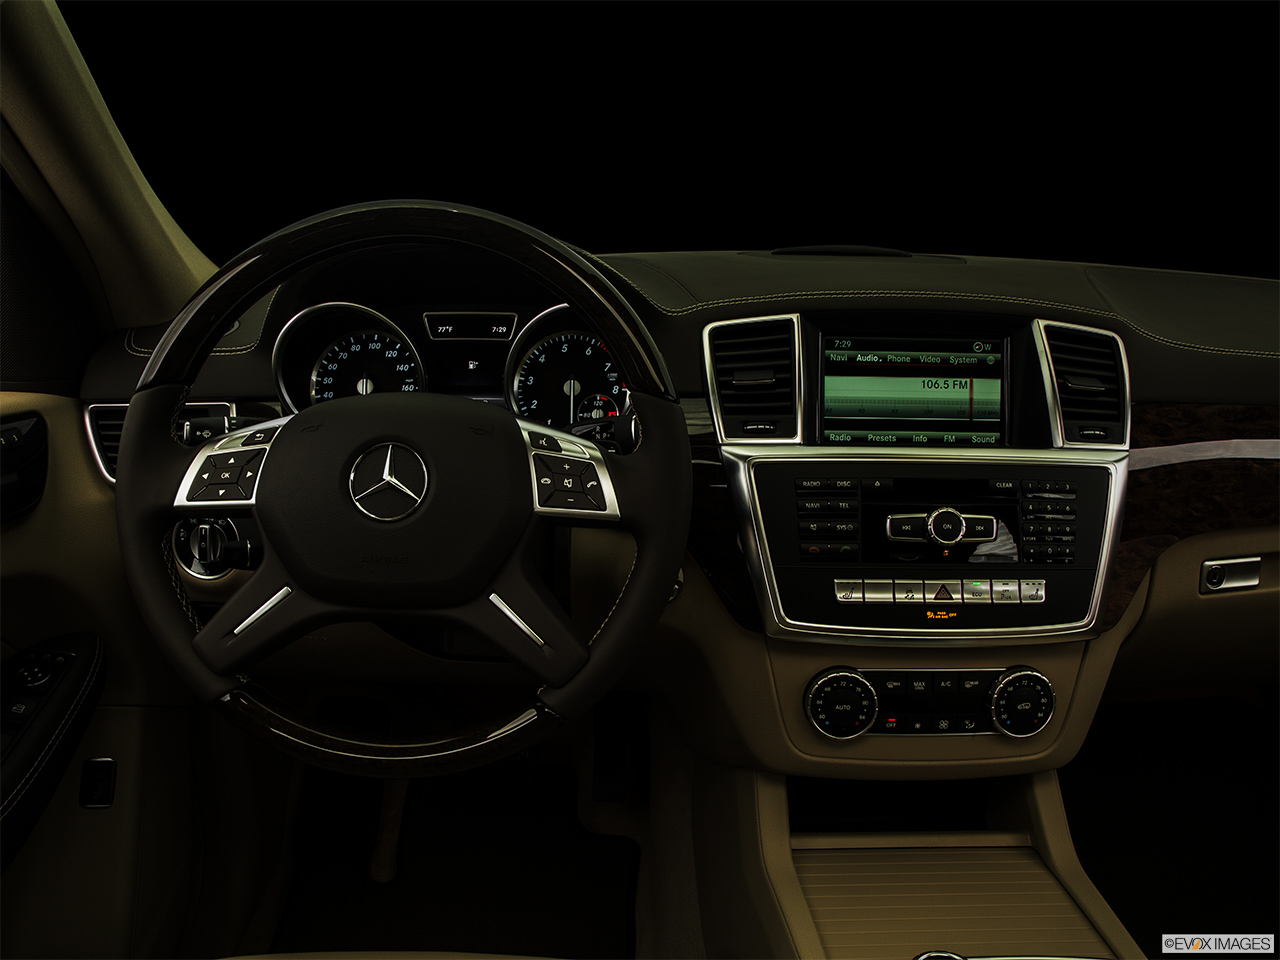 Car pictures list for mercedes benz gl class 2016 gl 500 for Mercedes benz payment estimator